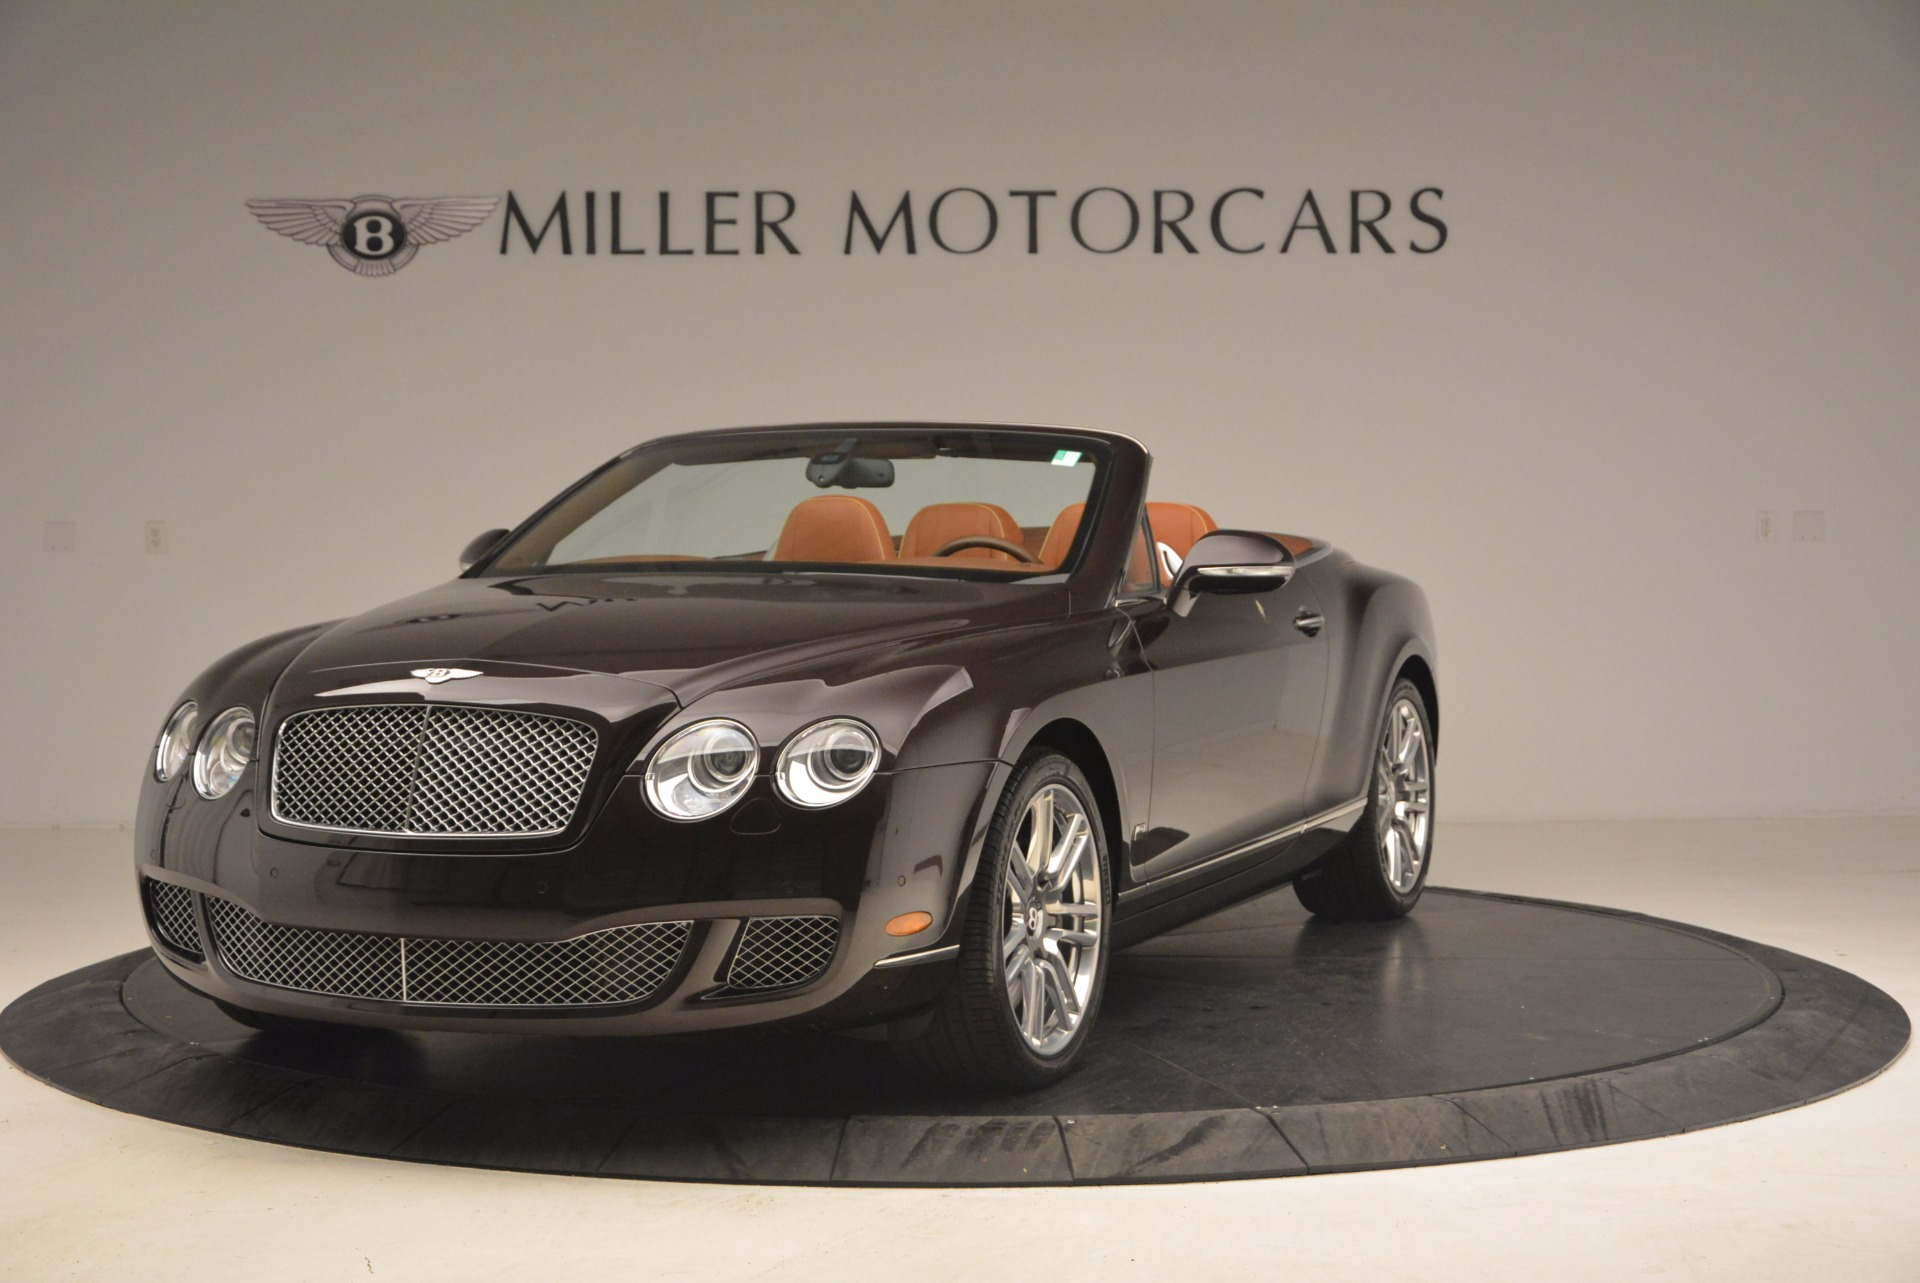 Used 2010 Bentley Continental GT Series 51 for sale Sold at Alfa Romeo of Westport in Westport CT 06880 1